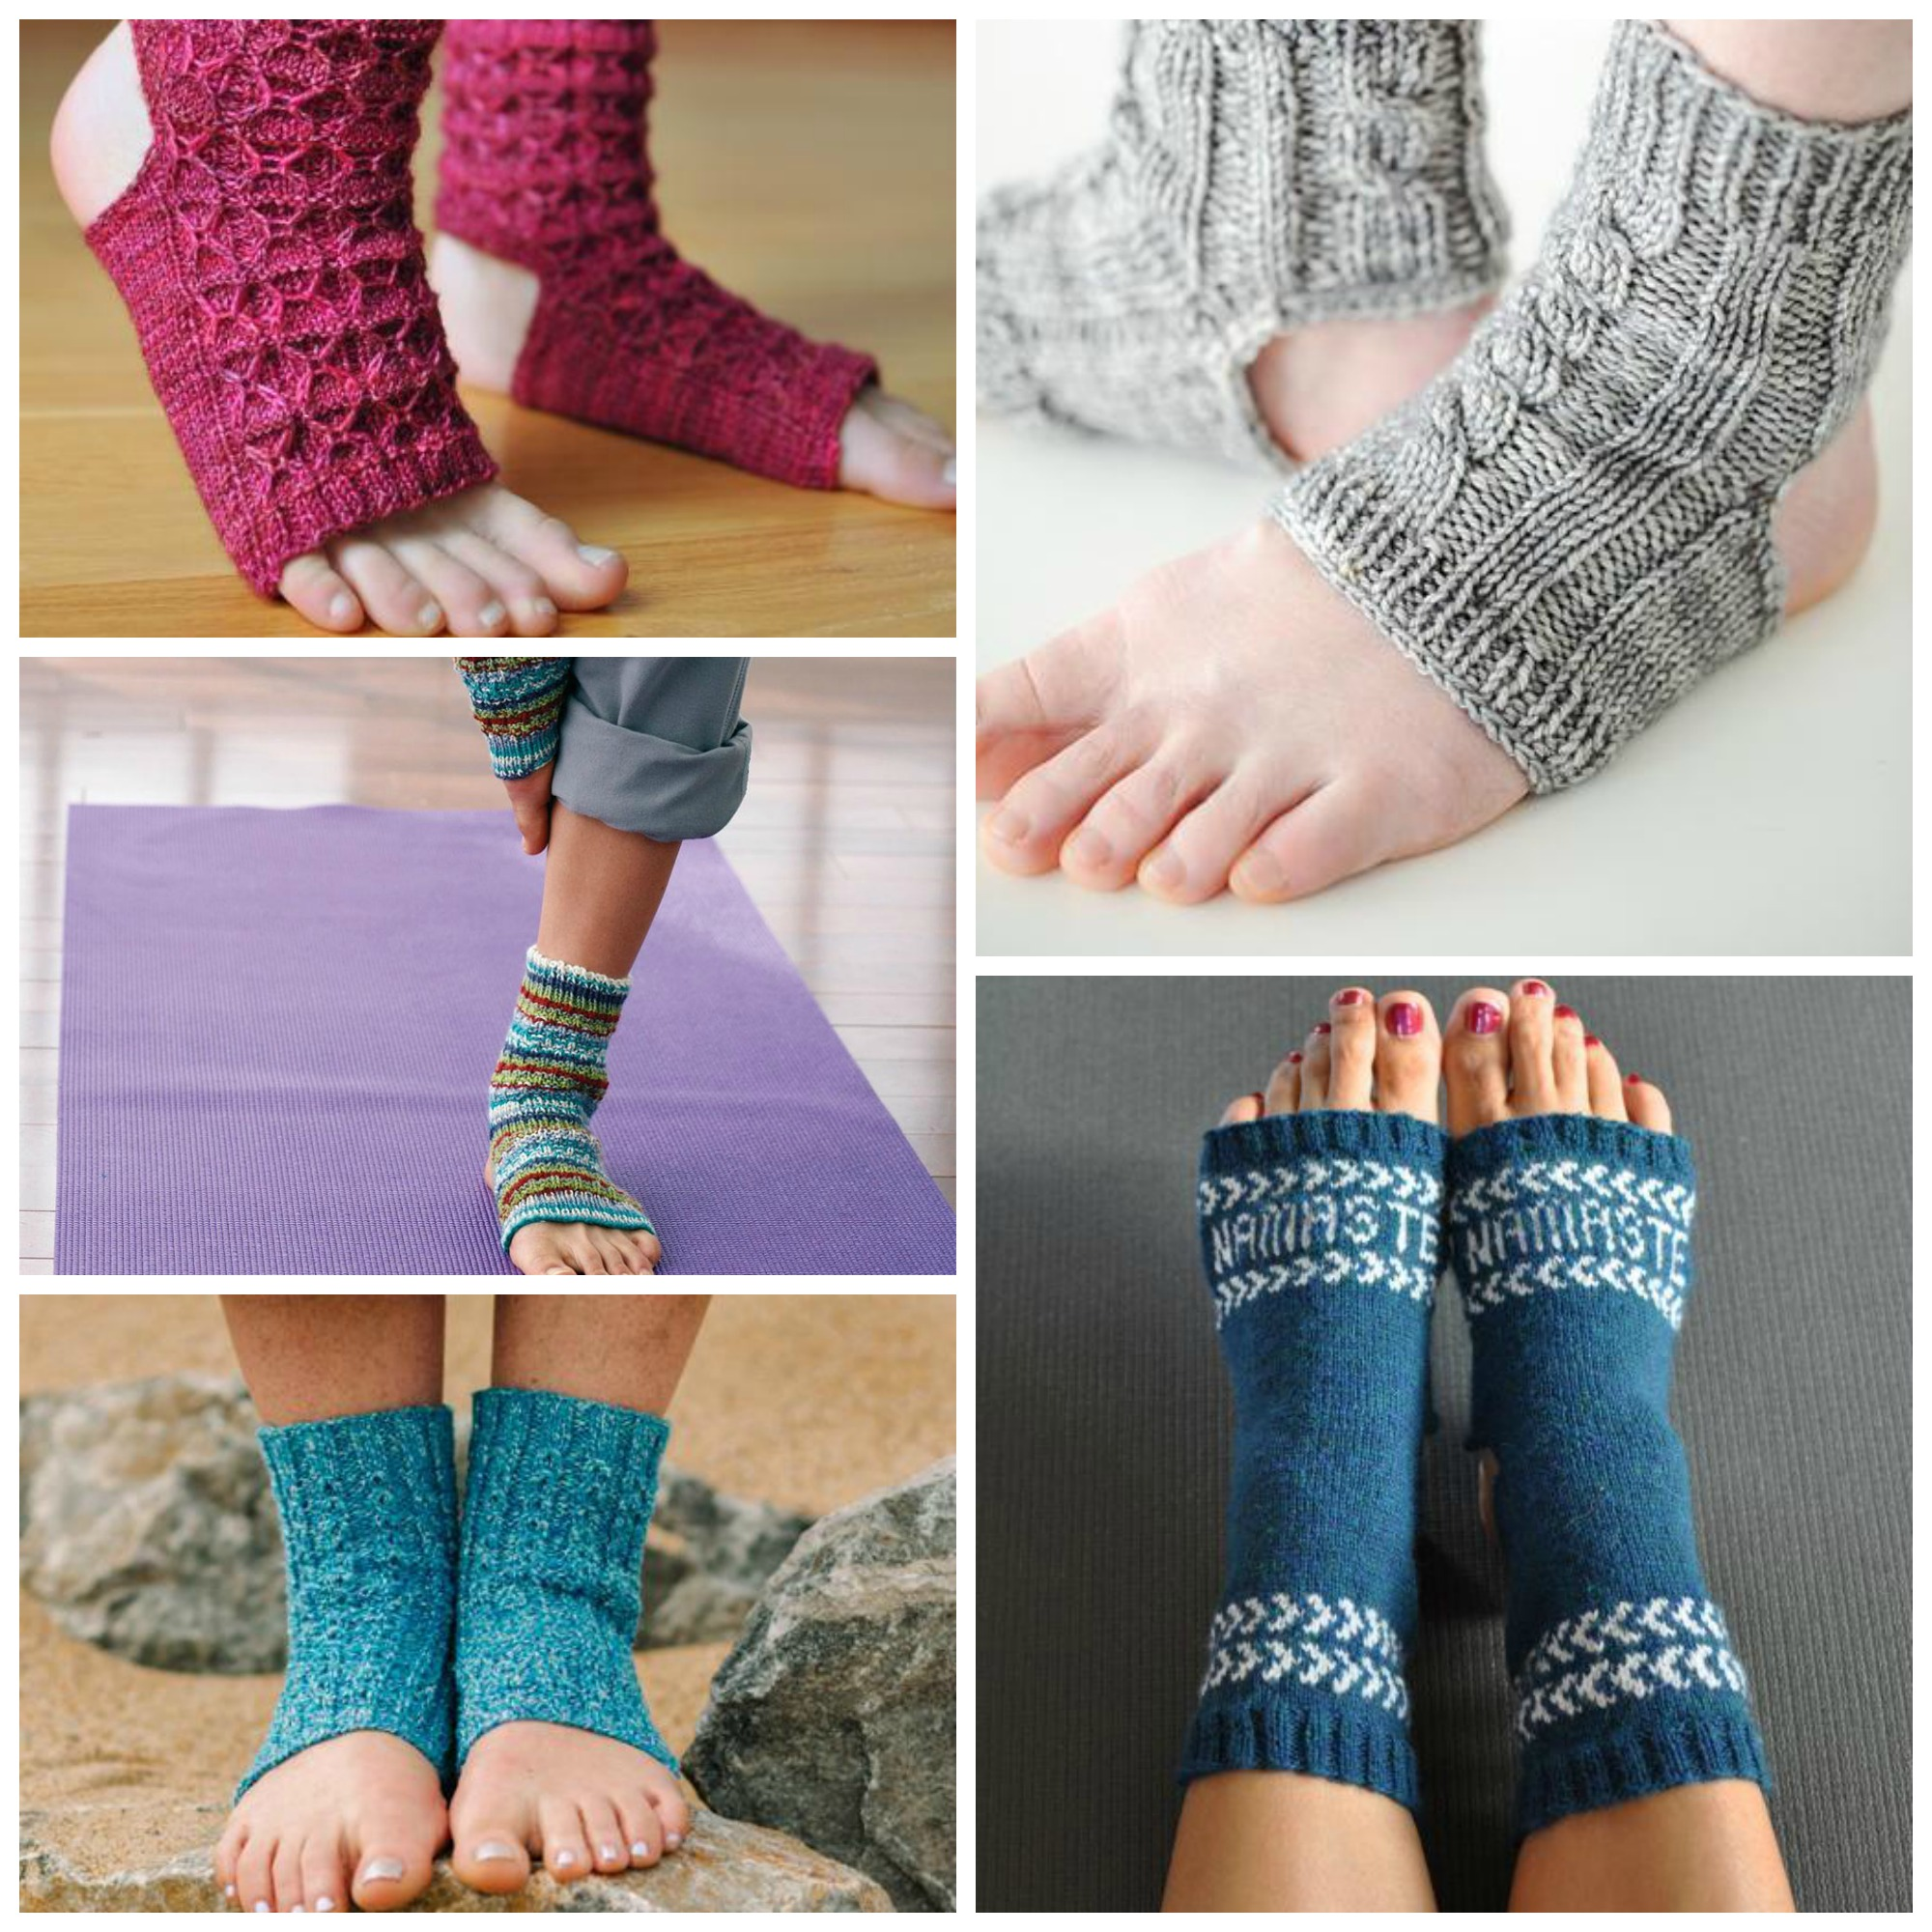 Yoga Socks Knitting Patterns